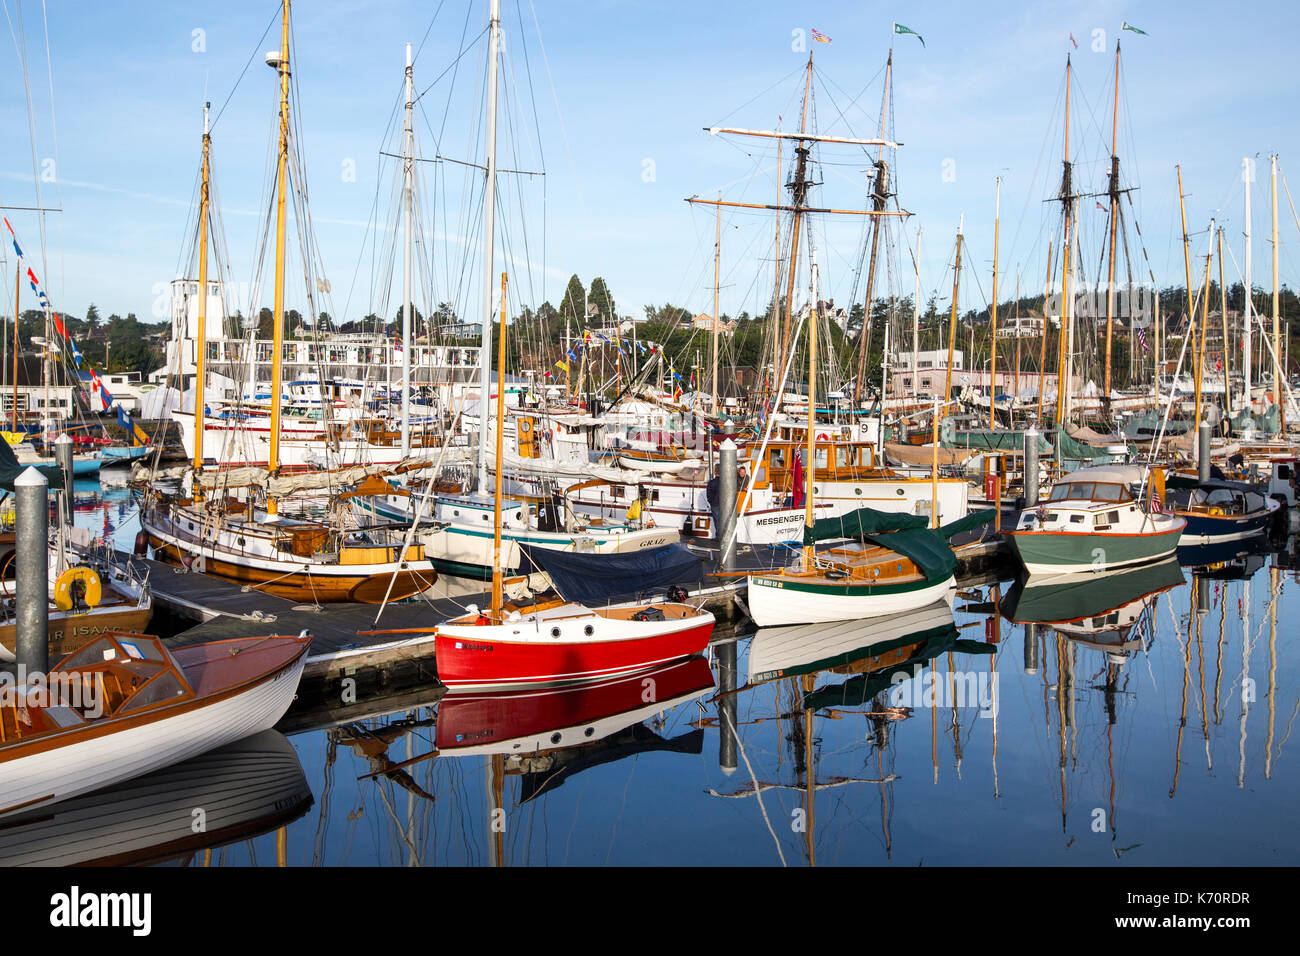 Wooden Boat Stock Photos Wooden Boat Stock Images Alamy